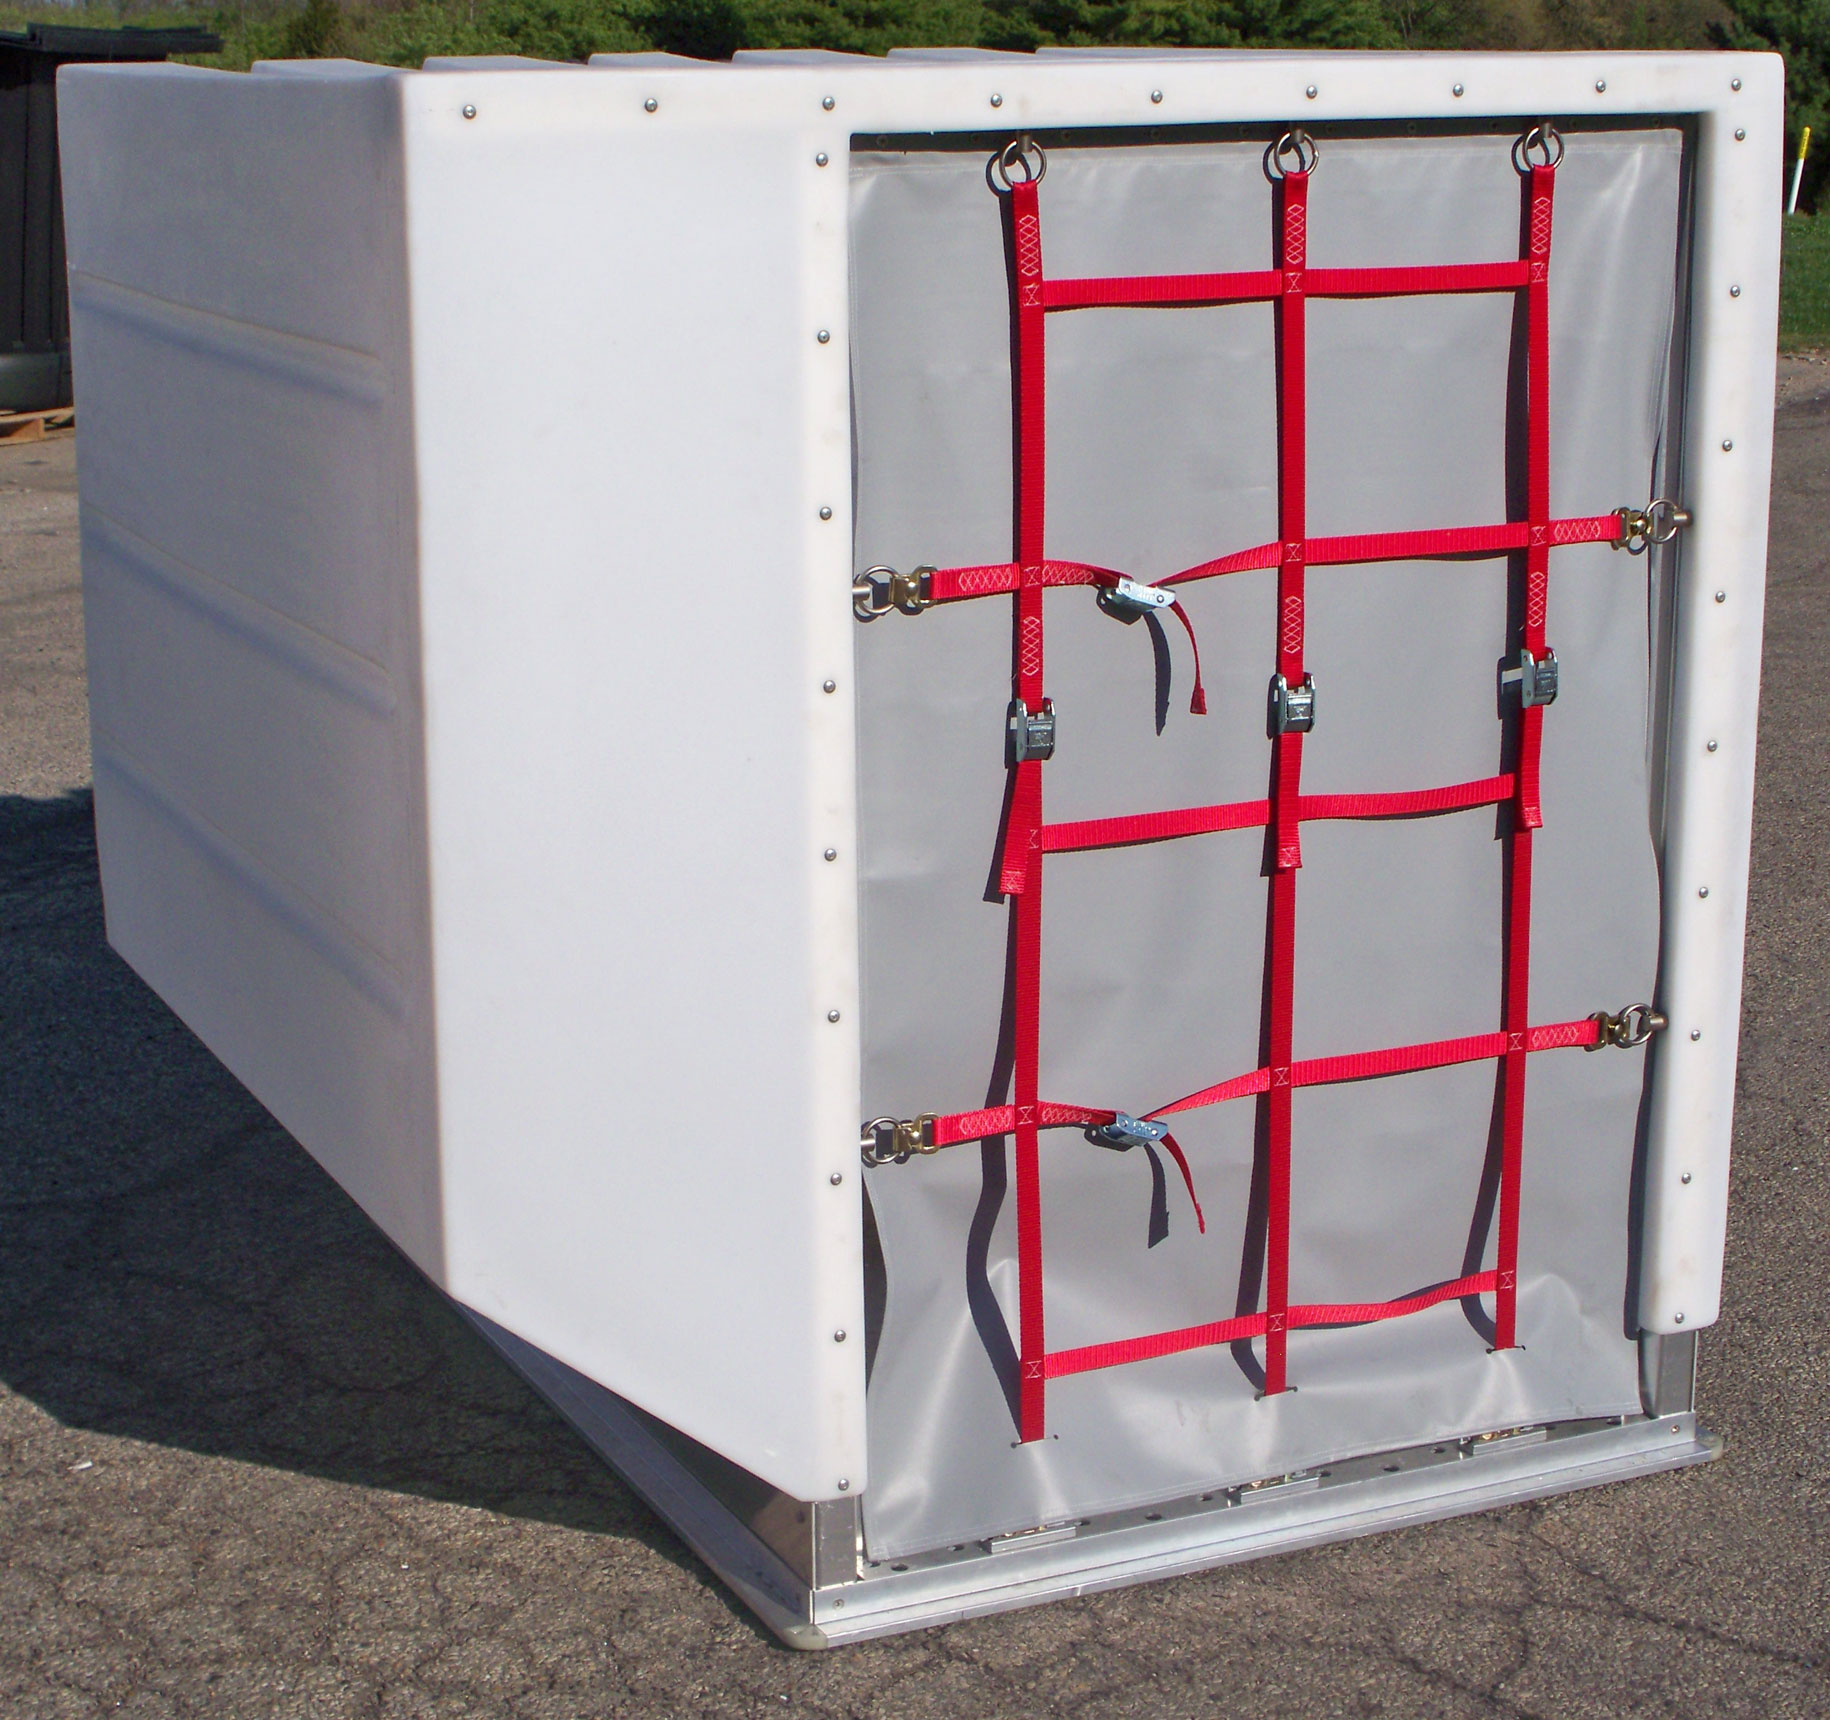 Granger Aerospace ULD 2, Granger Aerospace LD 2, ULD 2 Air Cargo Container, LD 2 Aerospace Cargo Container